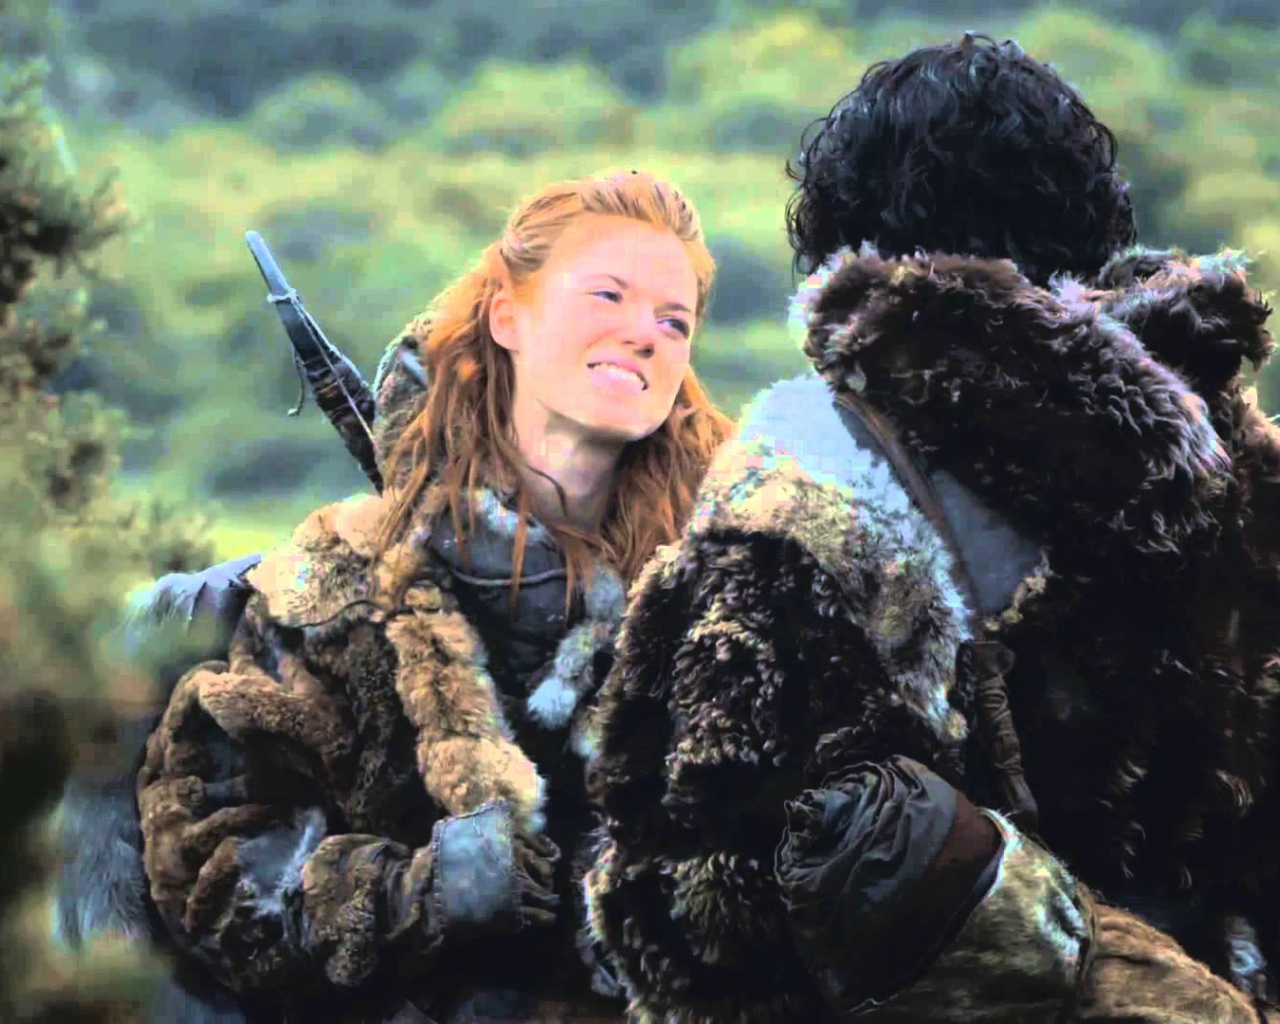 Free Download Jon Snow Ygritte Wallpaper Ygritte And Jon Snow Game Of 1920x1080 For Your Desktop Mobile Tablet Explore 46 Jon Snow Iphone Wallpaper Jon Snow Iphone Wallpaper Jon